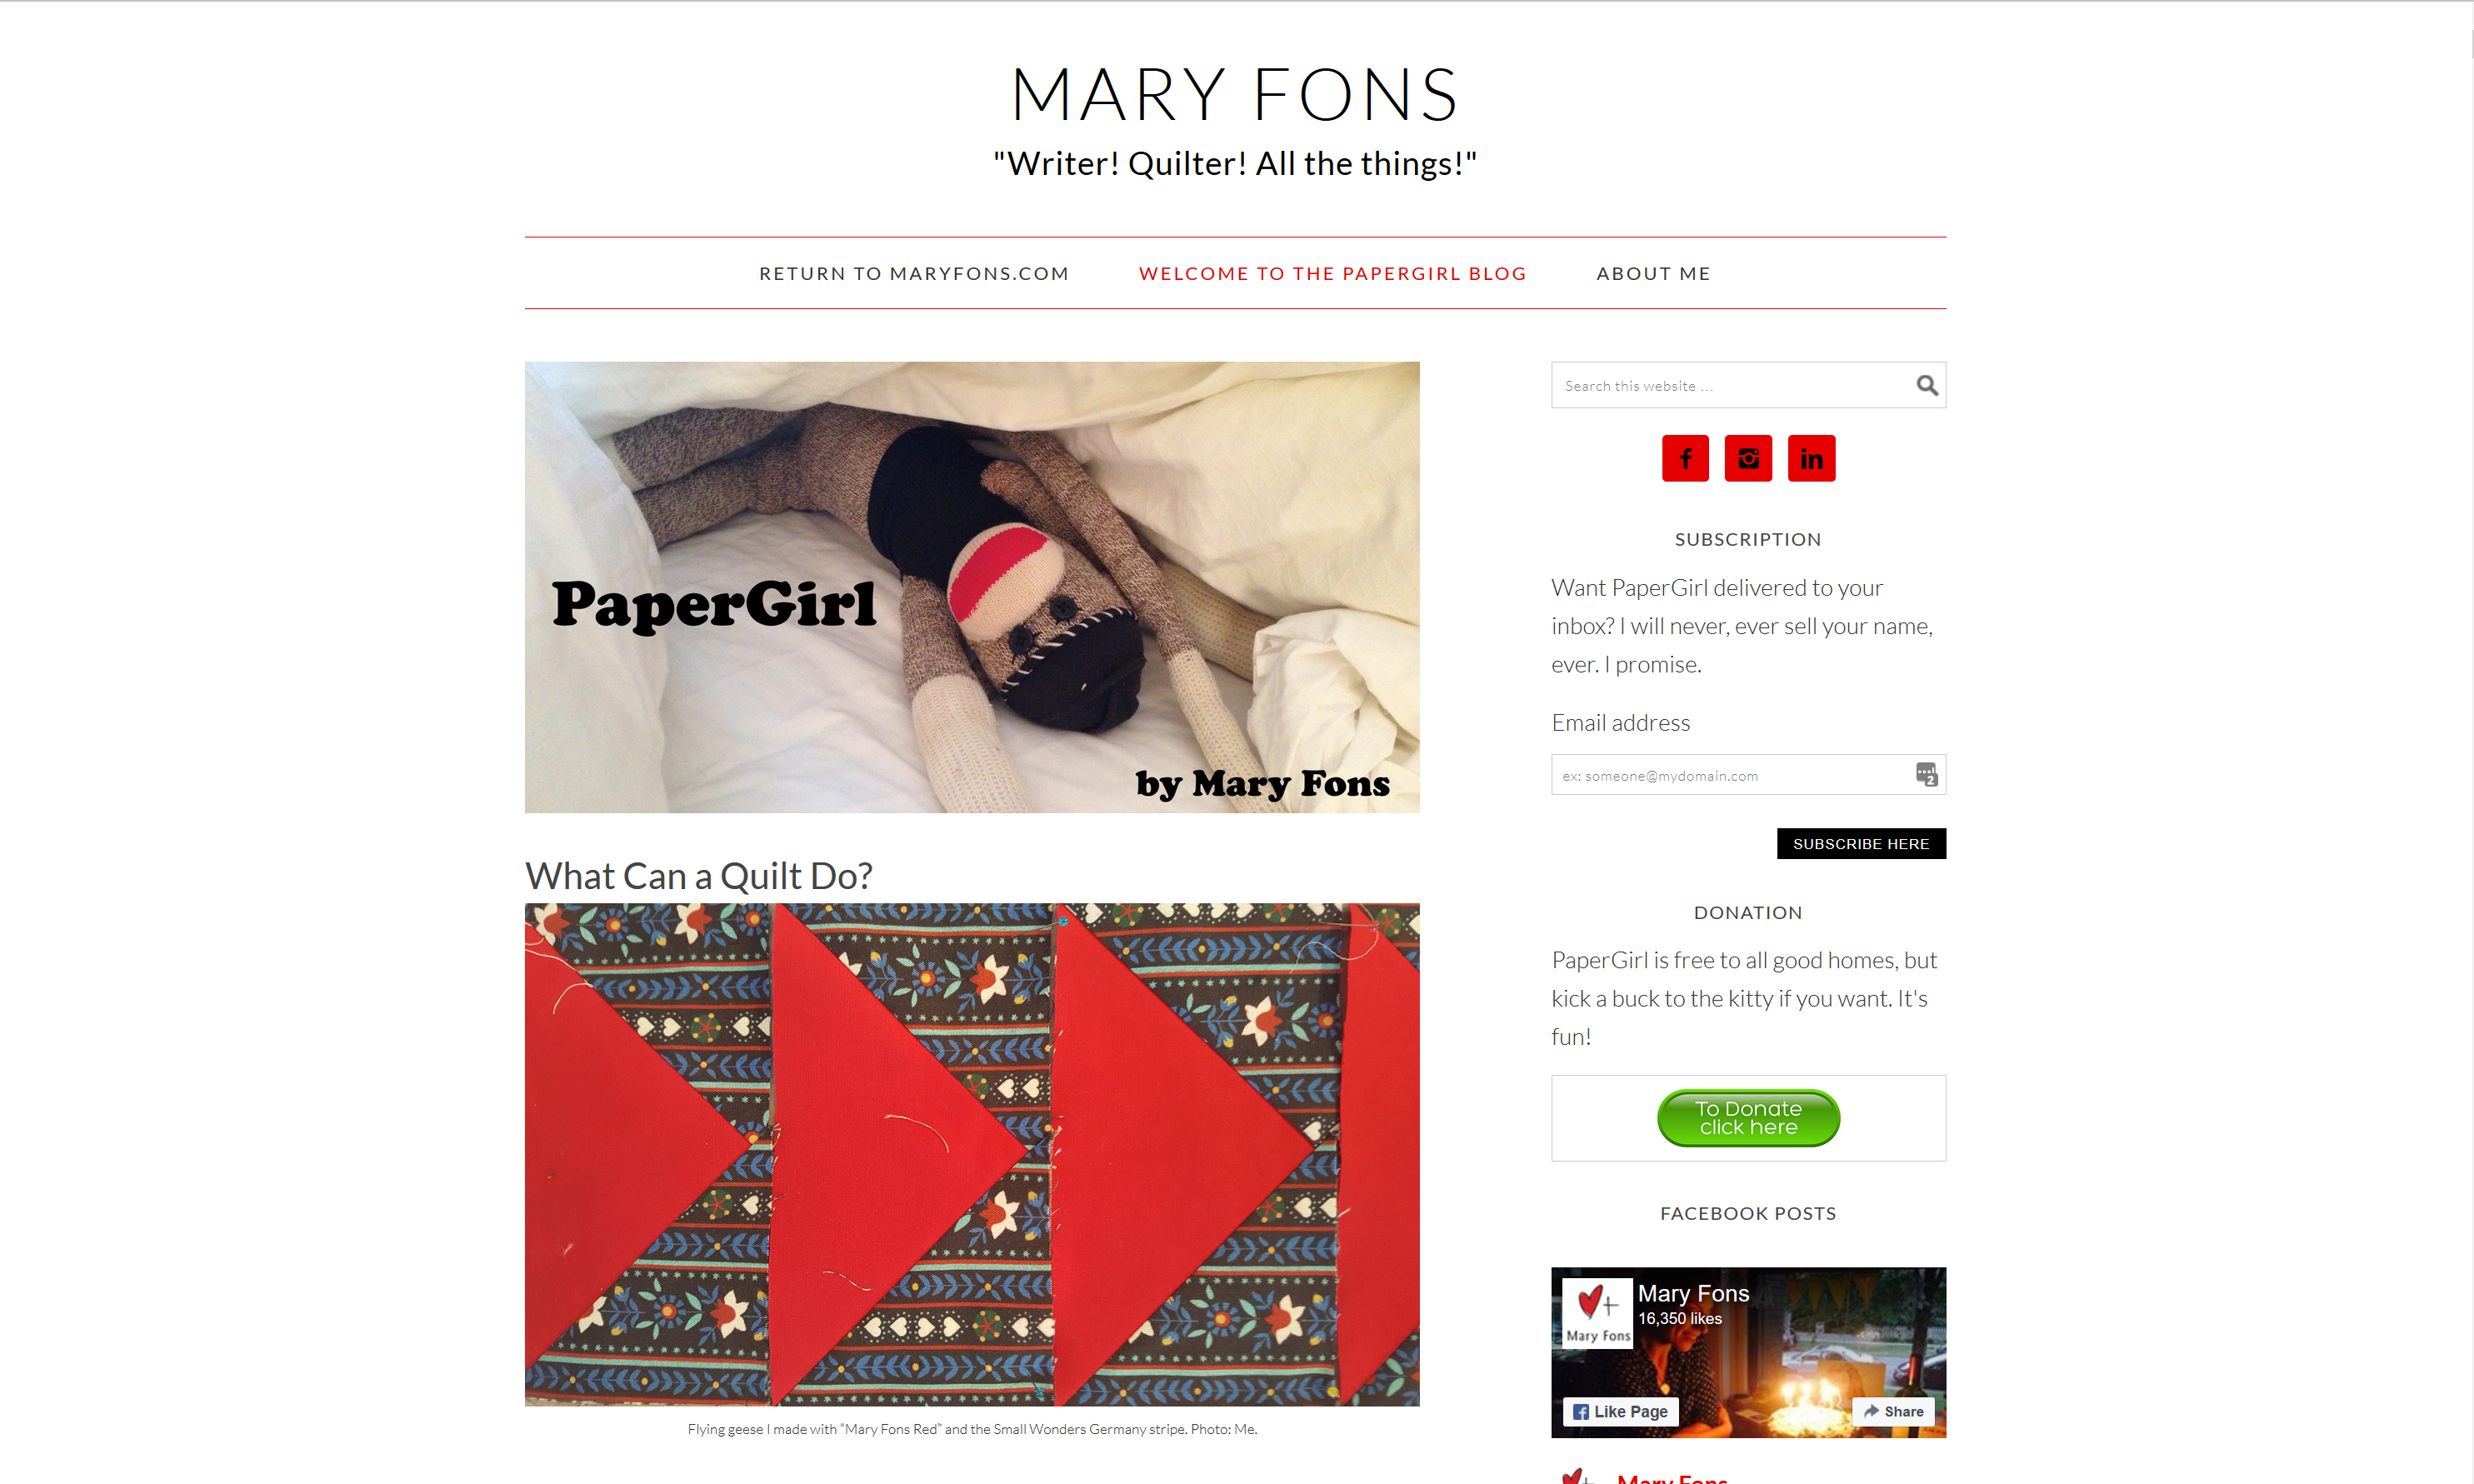 Mary Fons Papergirl Blog